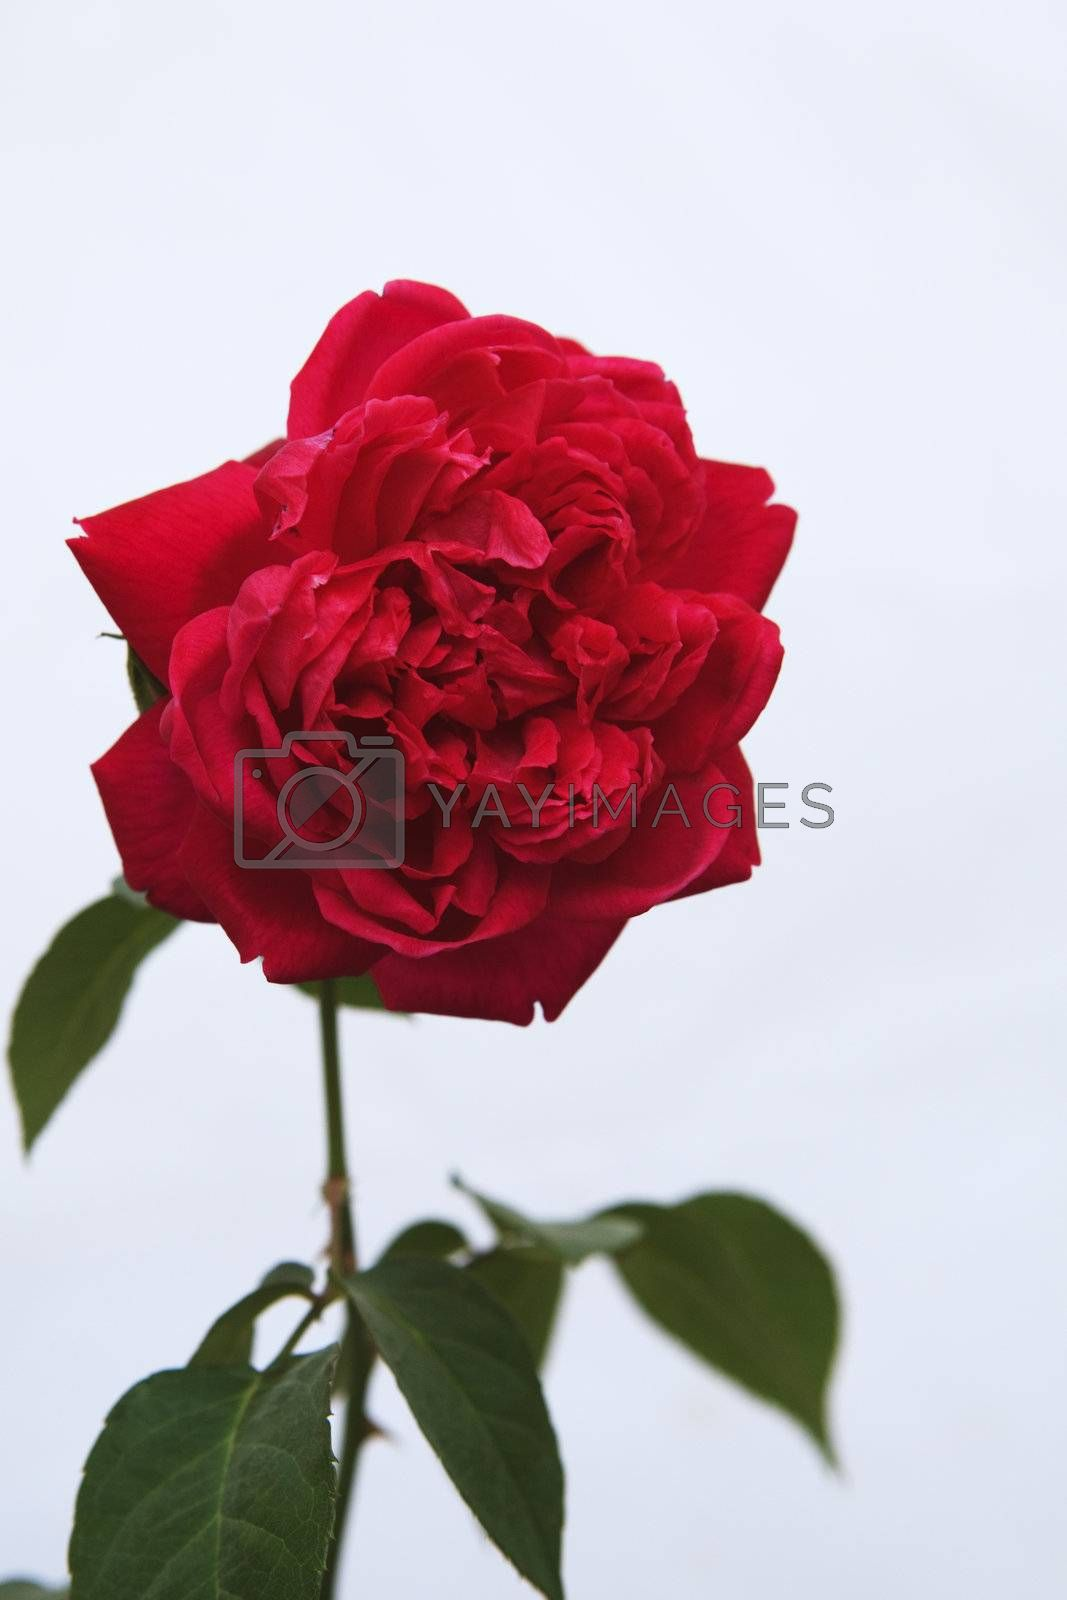 Single Red Rose flower against a white background